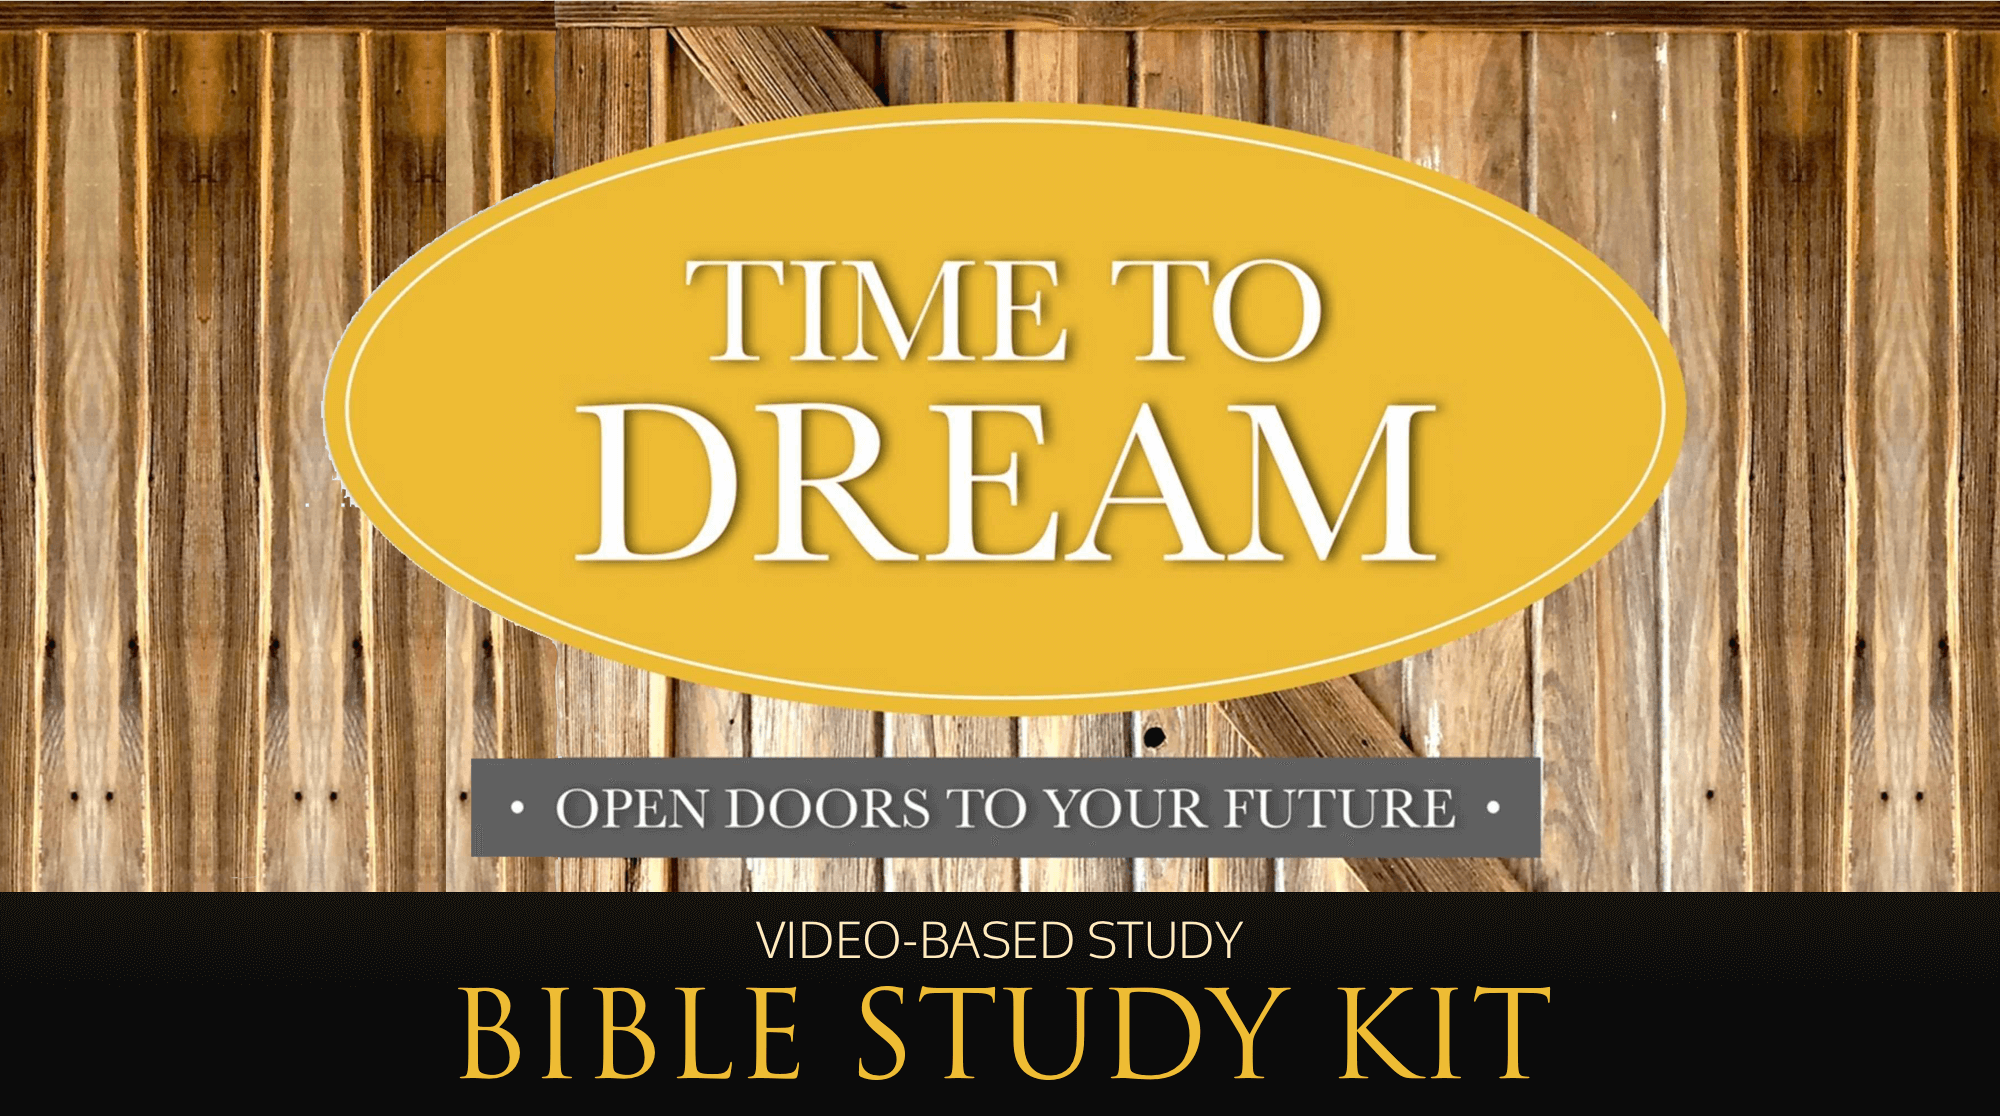 best-christian-Bible-courses-studies-Time-to-Dream-dvd-bible-study-kit-small-groups